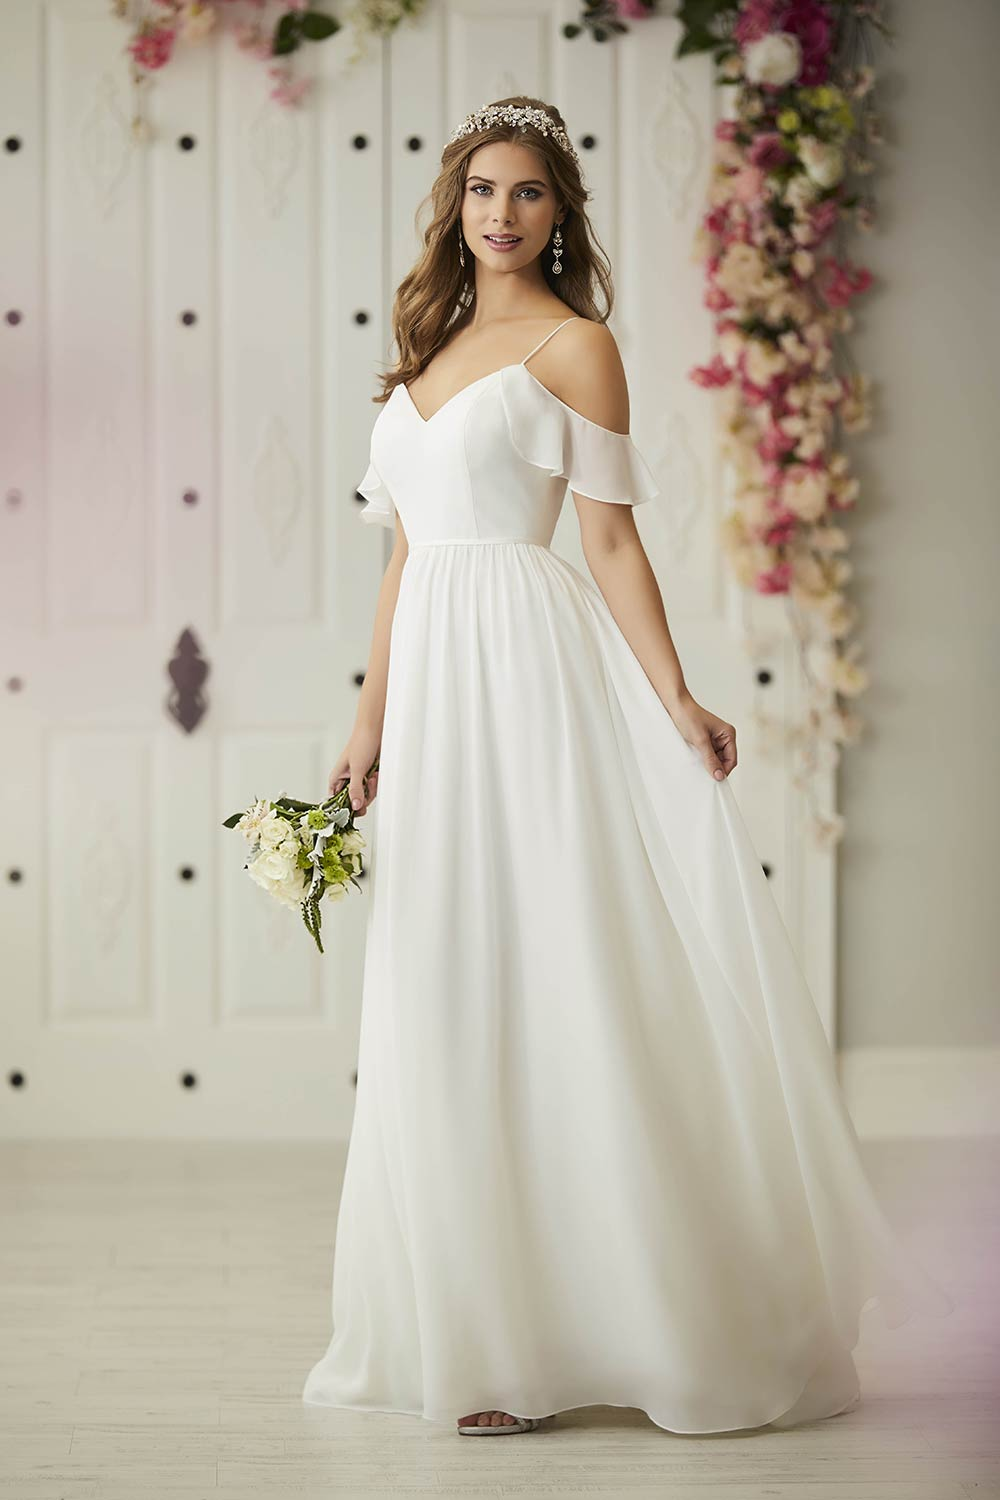 bridesmaid-dresses-jacquelin-bridals-canada-27316